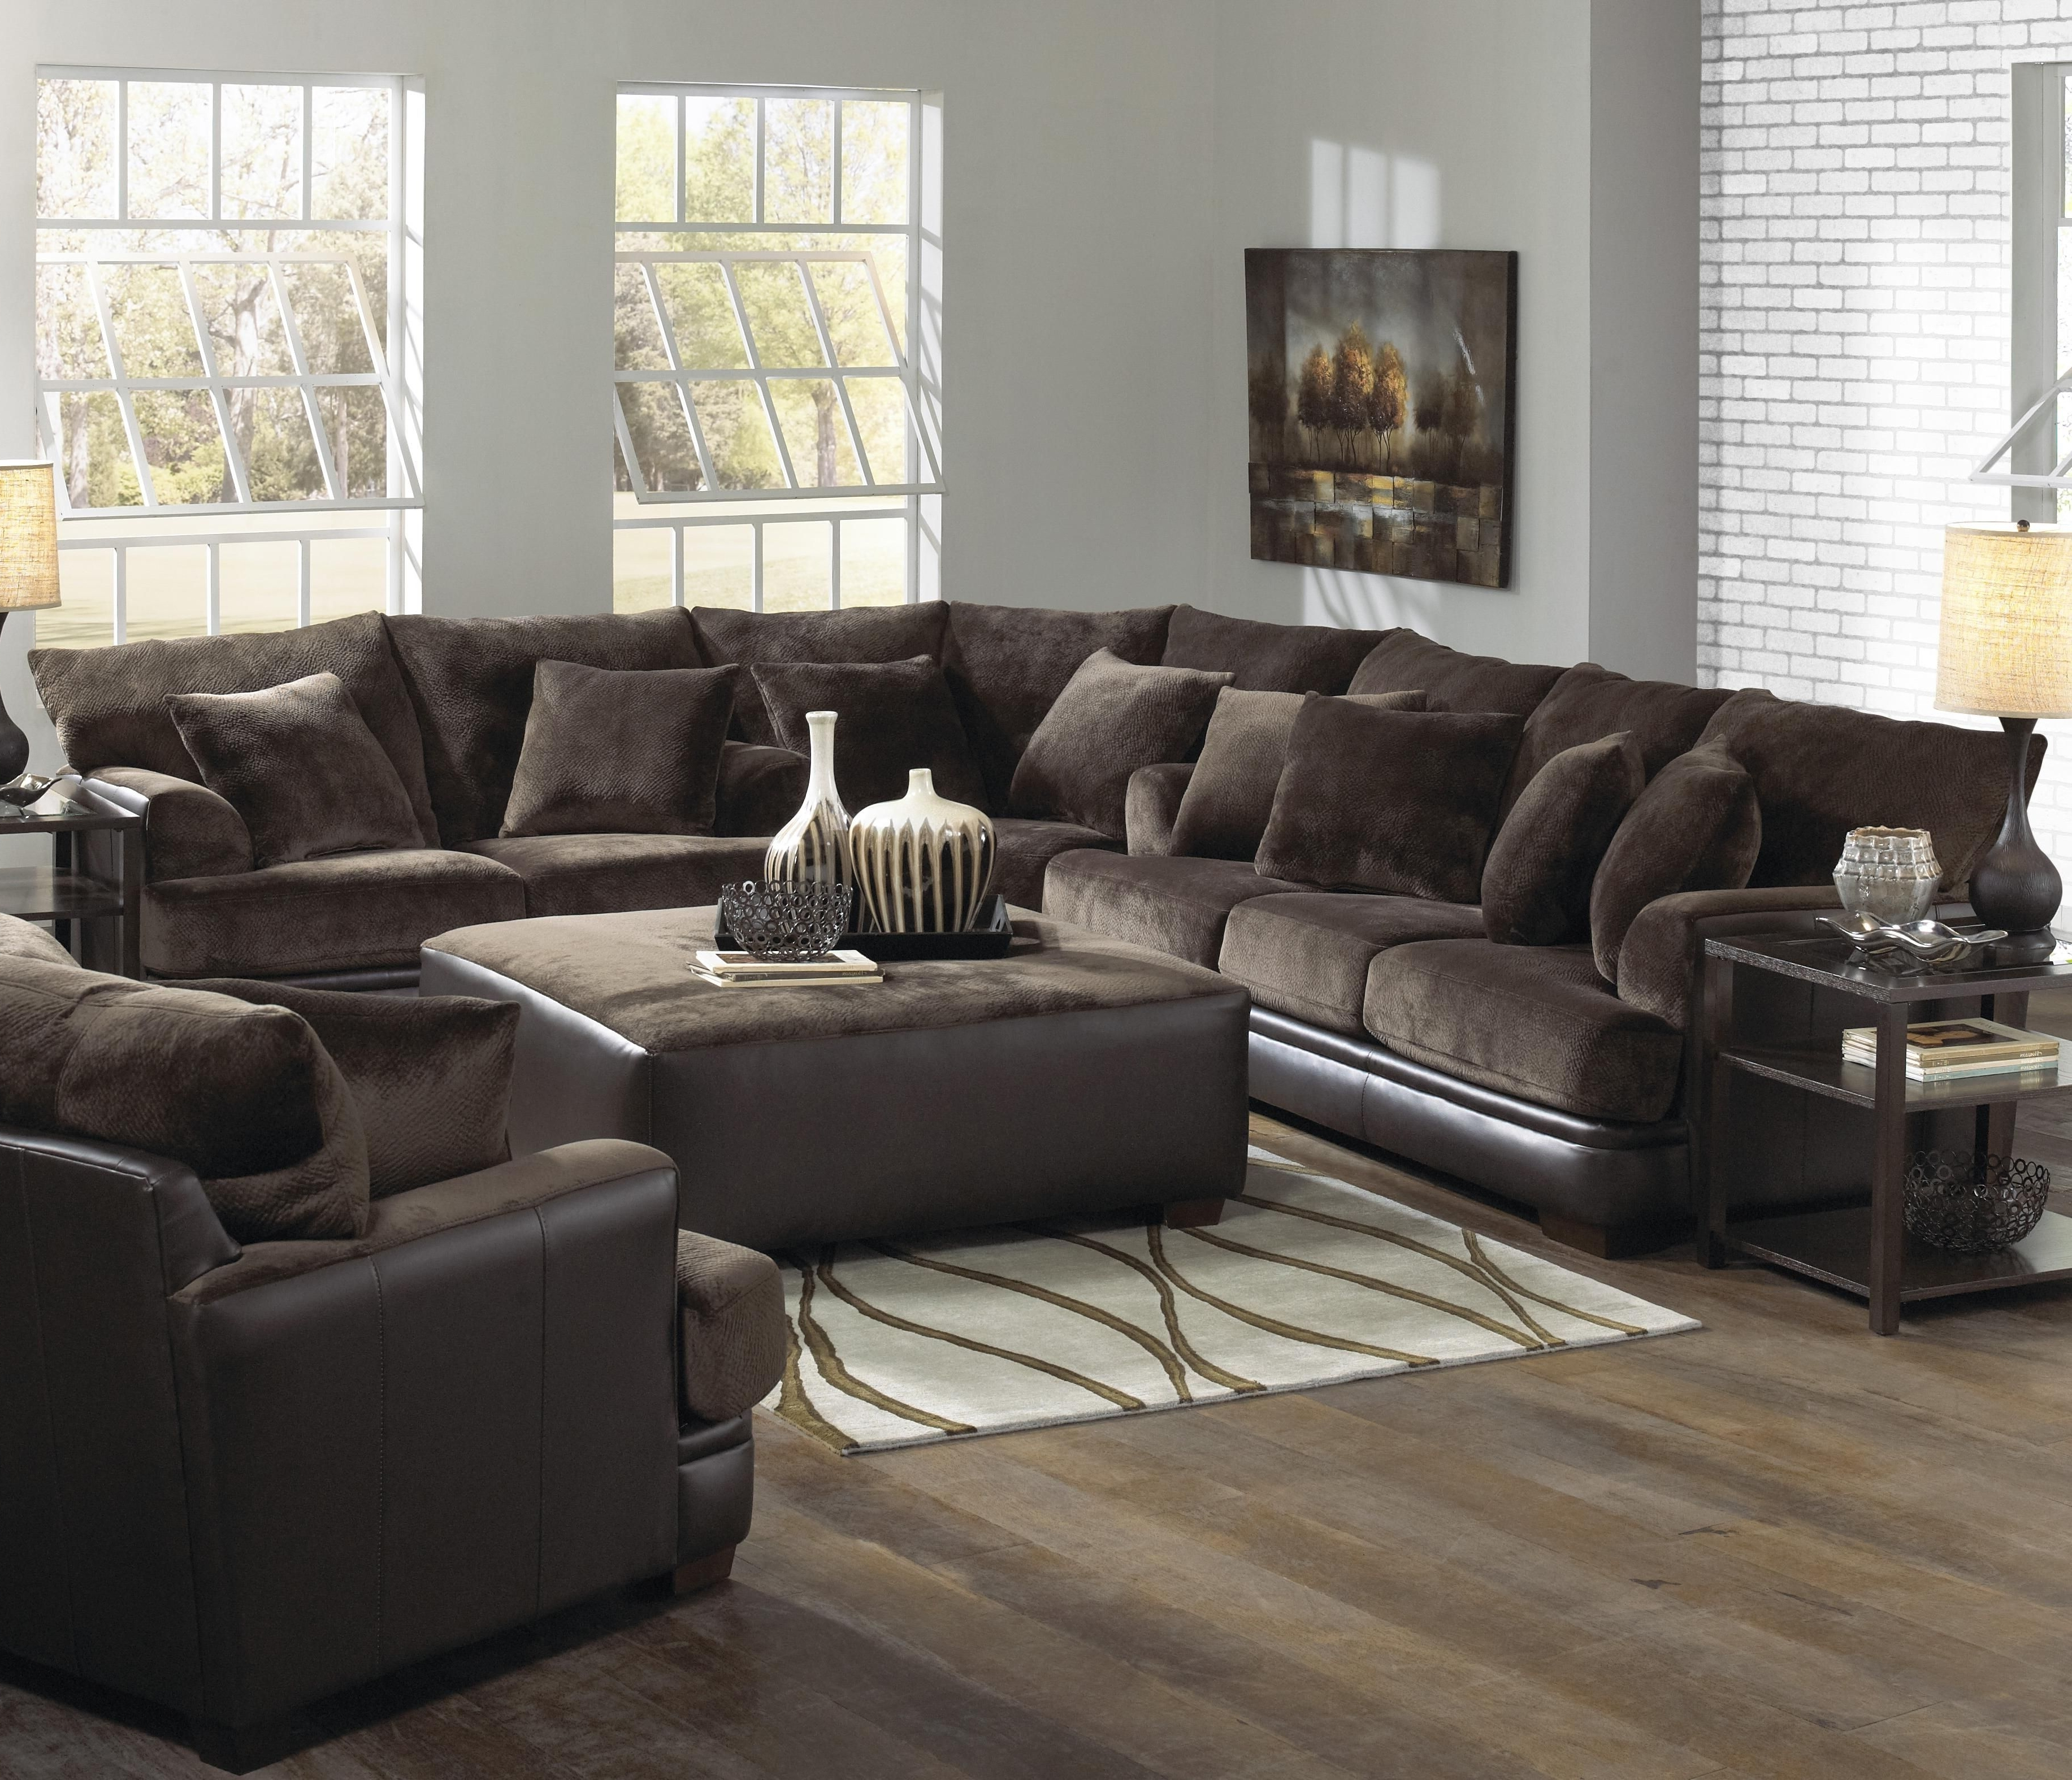 Trendy Barkley Large L Shaped Sectional Sofa With Right Side Loveseat With Huge Sofas (View 13 of 15)